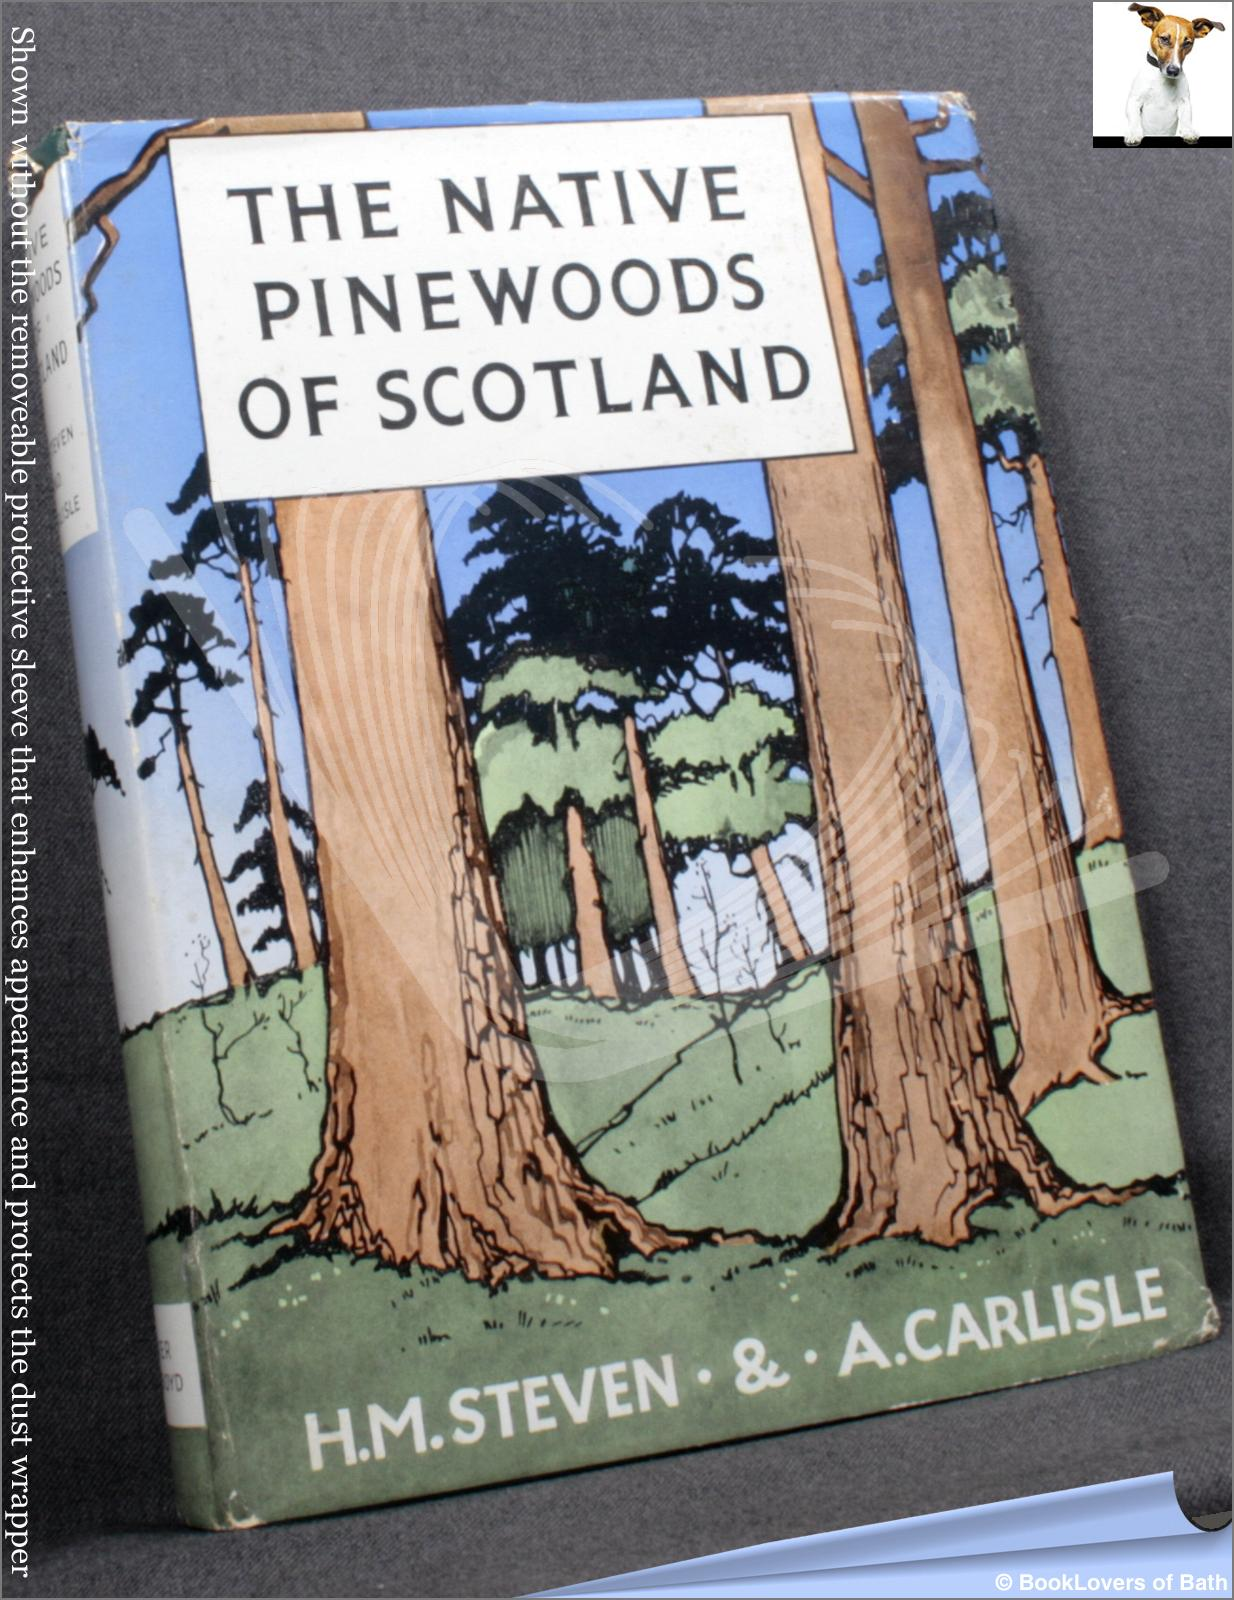 The Native Pinewoods of Scotland - H. M. [Henry Marshall] Steven & A. Carlisle